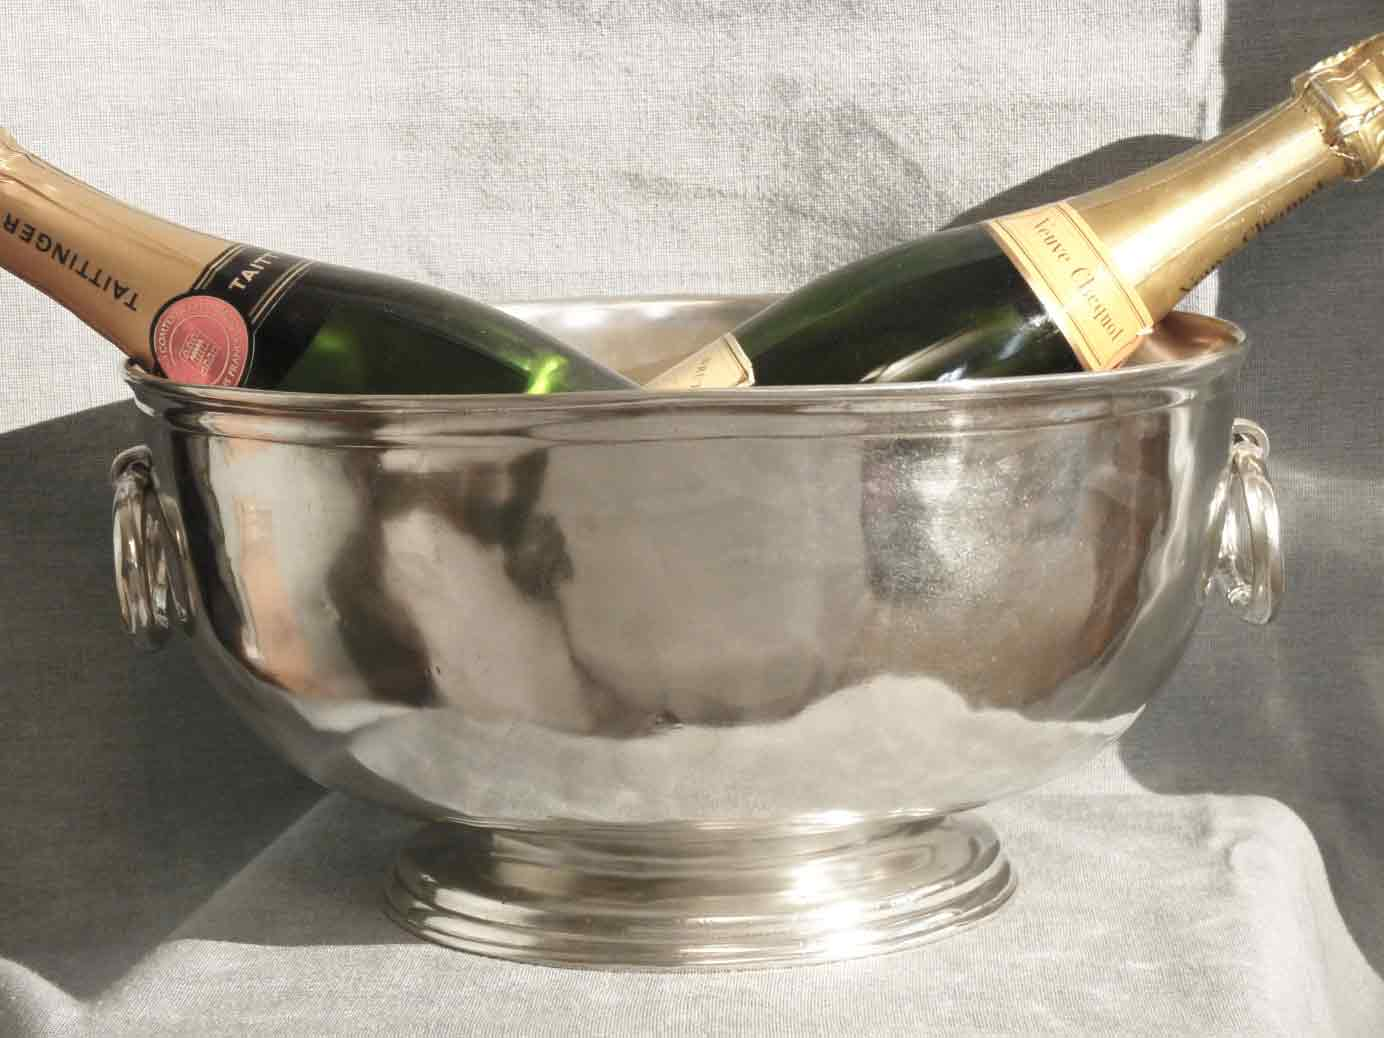 Vasque+A+champagne+Epernay etain aspect argent massif